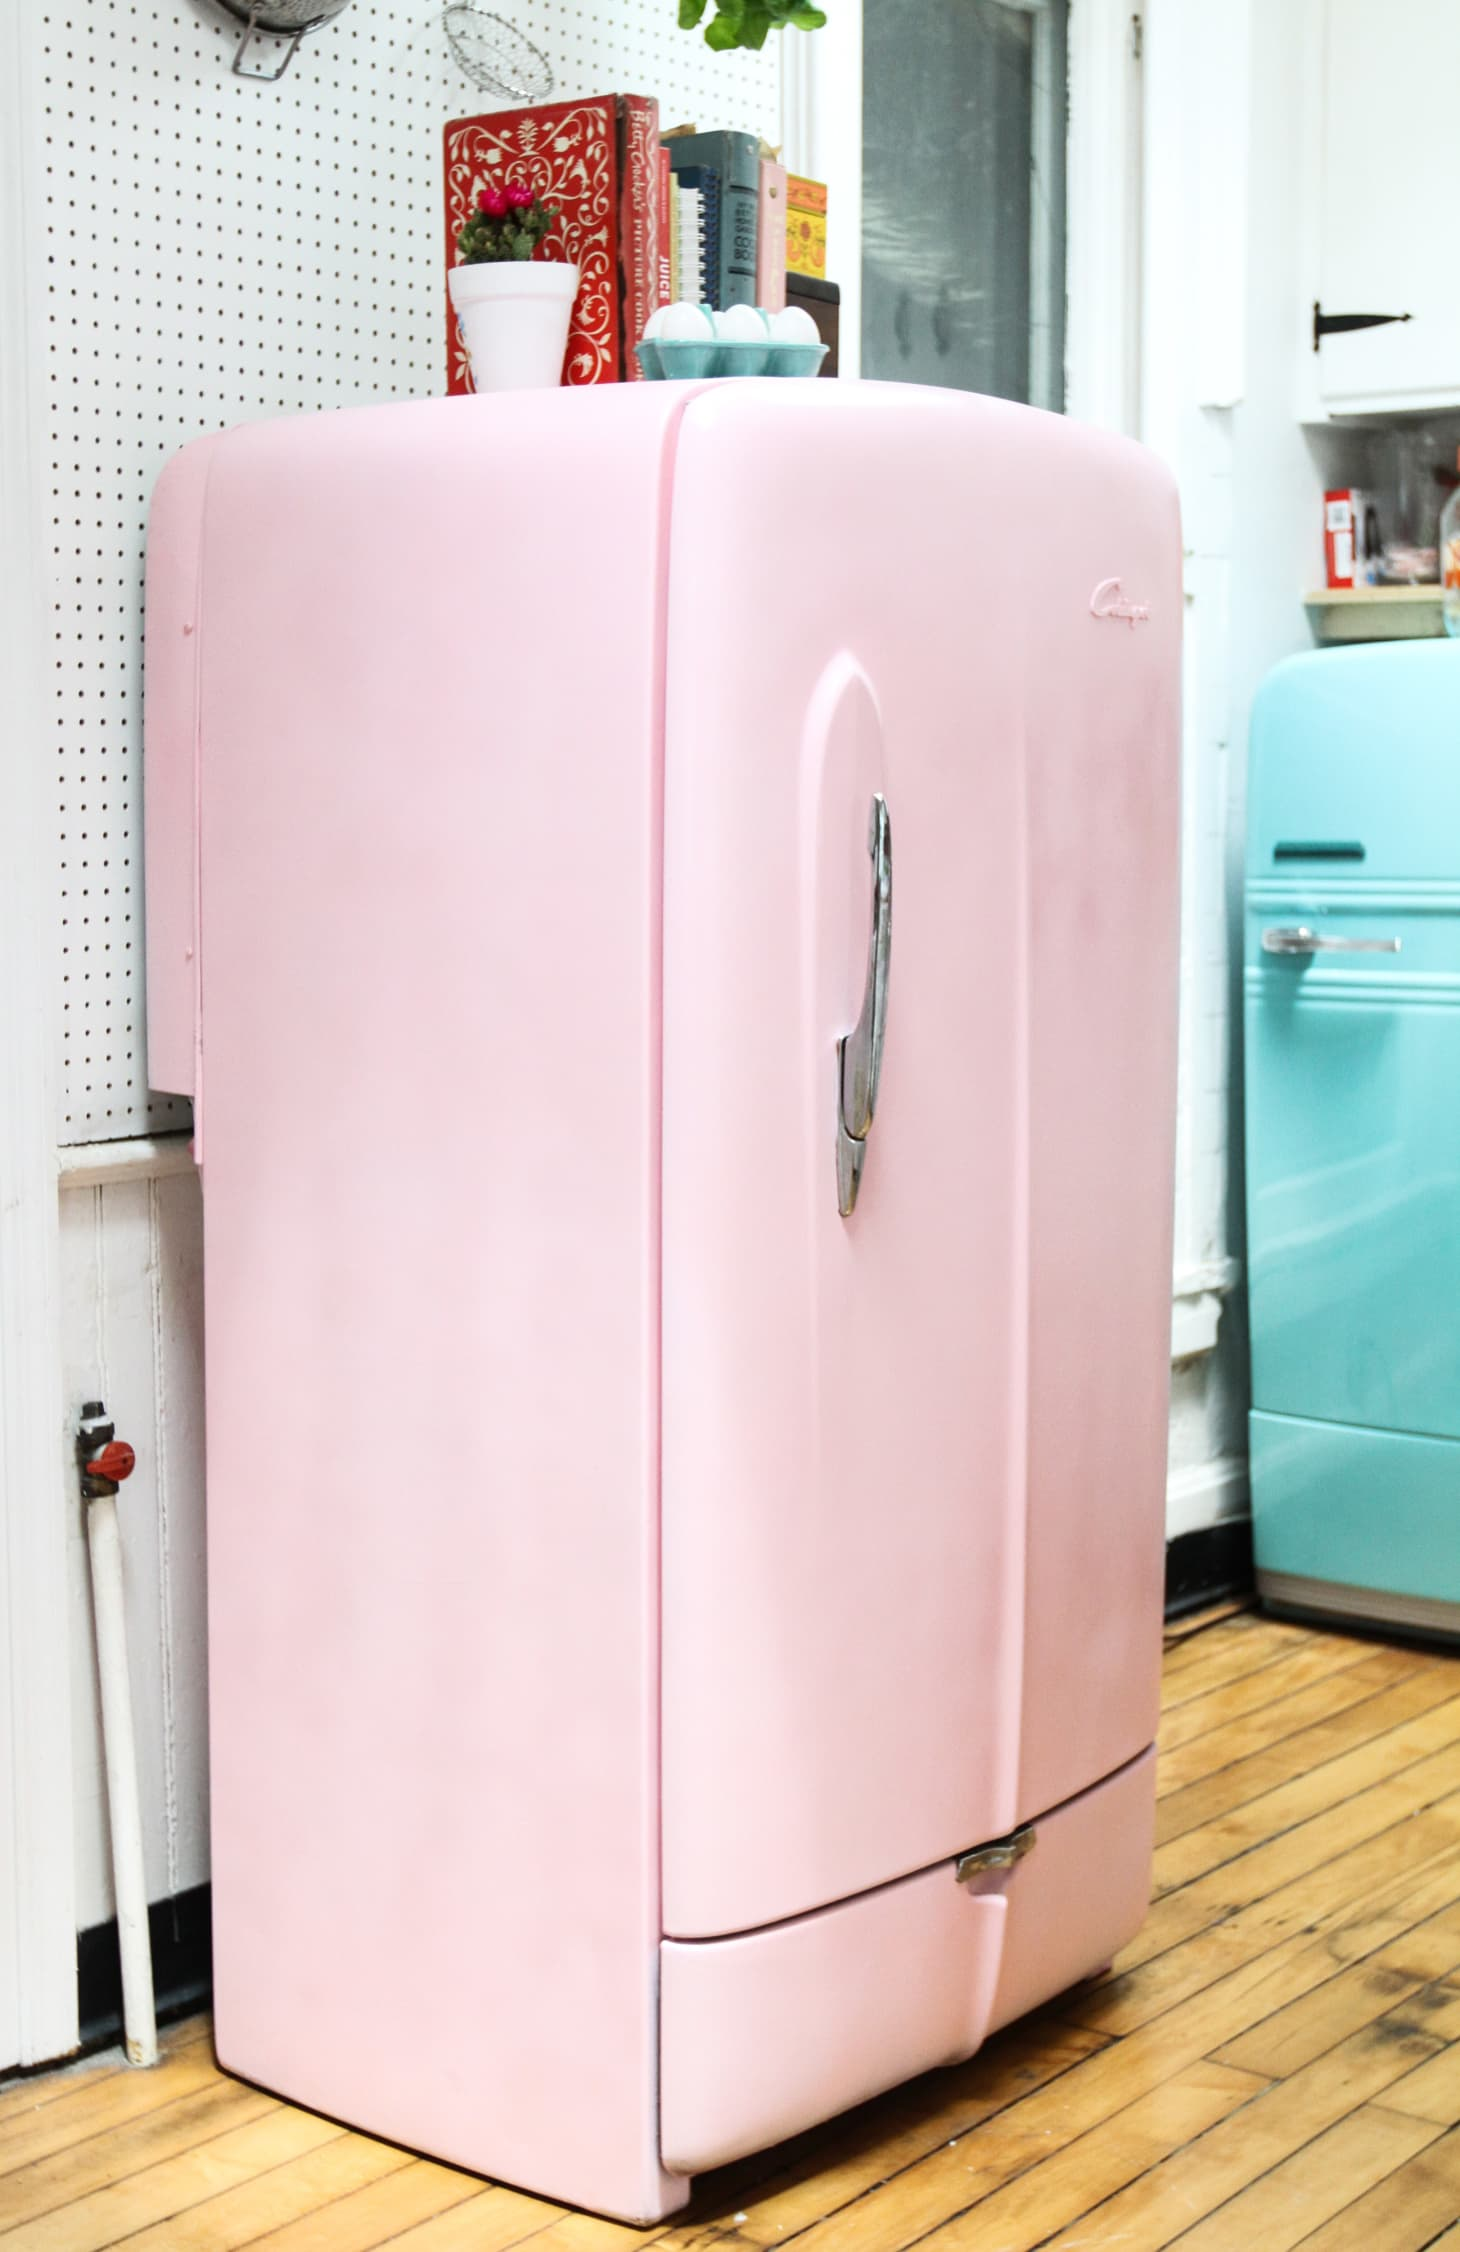 How To Paint a Refrigerator Tips \u0026 Photo Tutorial